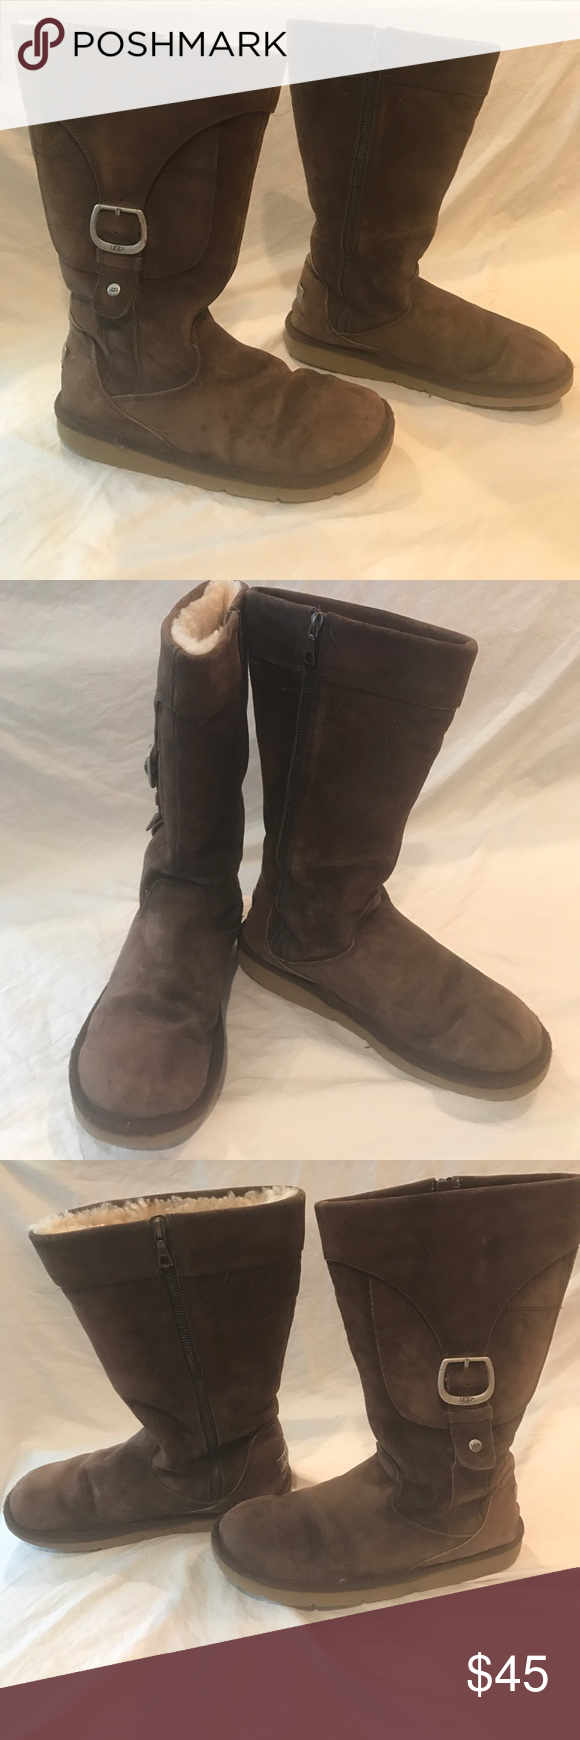 9096f07d2ea Ugg Cargo III Expresso Tall Winter Boots Size 9 Zip up retro boots ...